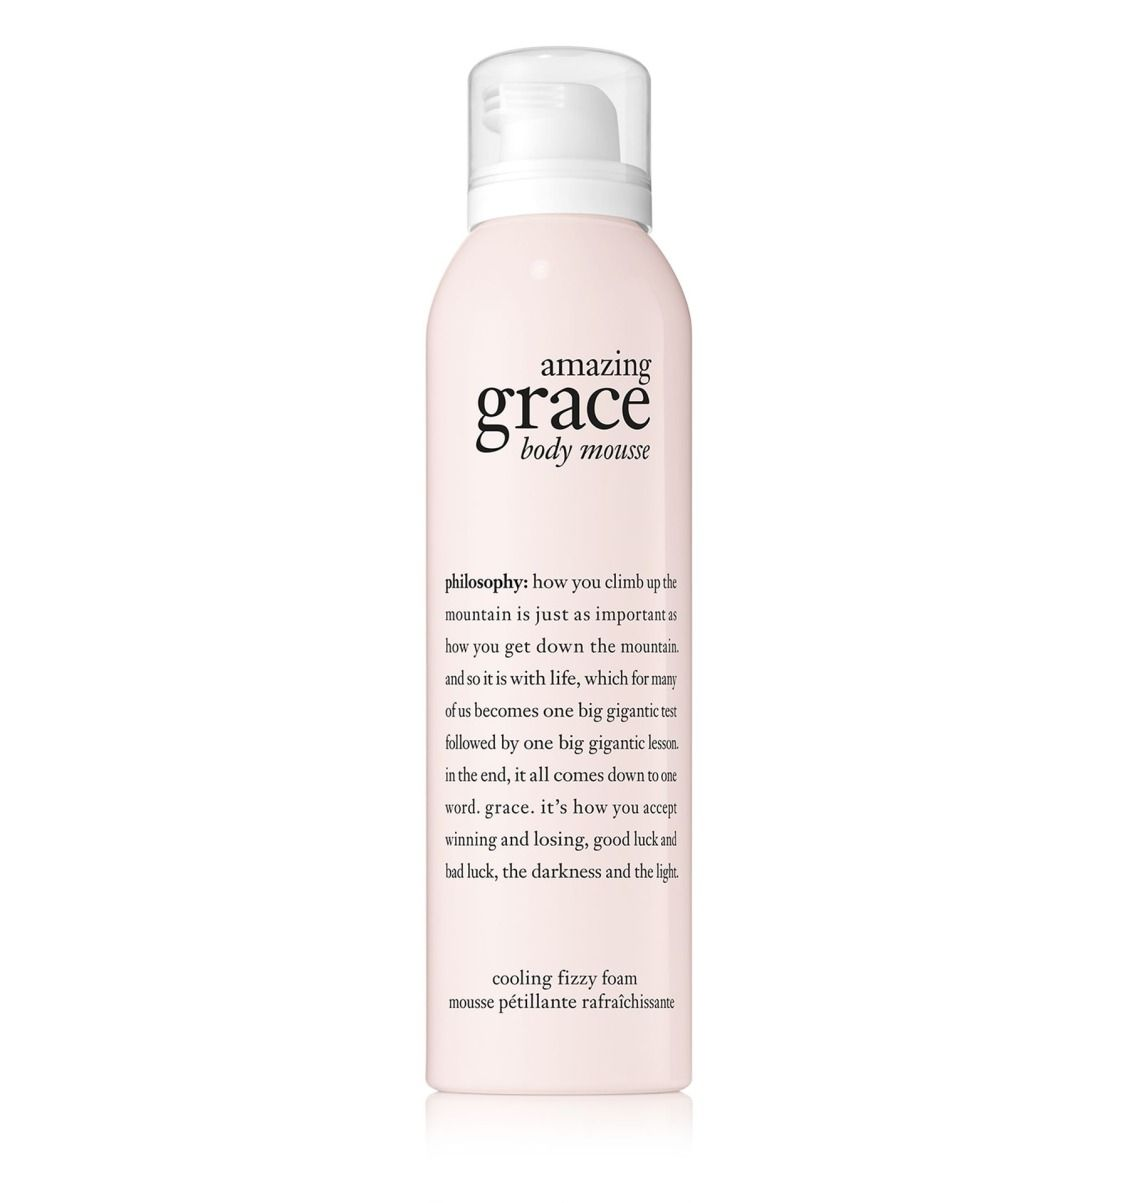 Amazing Grace Body Mousse Wakes Up Your Skin With An Instantly Cool And Fizzy Sensation While It Smooths Ski Philosophy Amazing Grace Dry Shampoo Amazing Grace